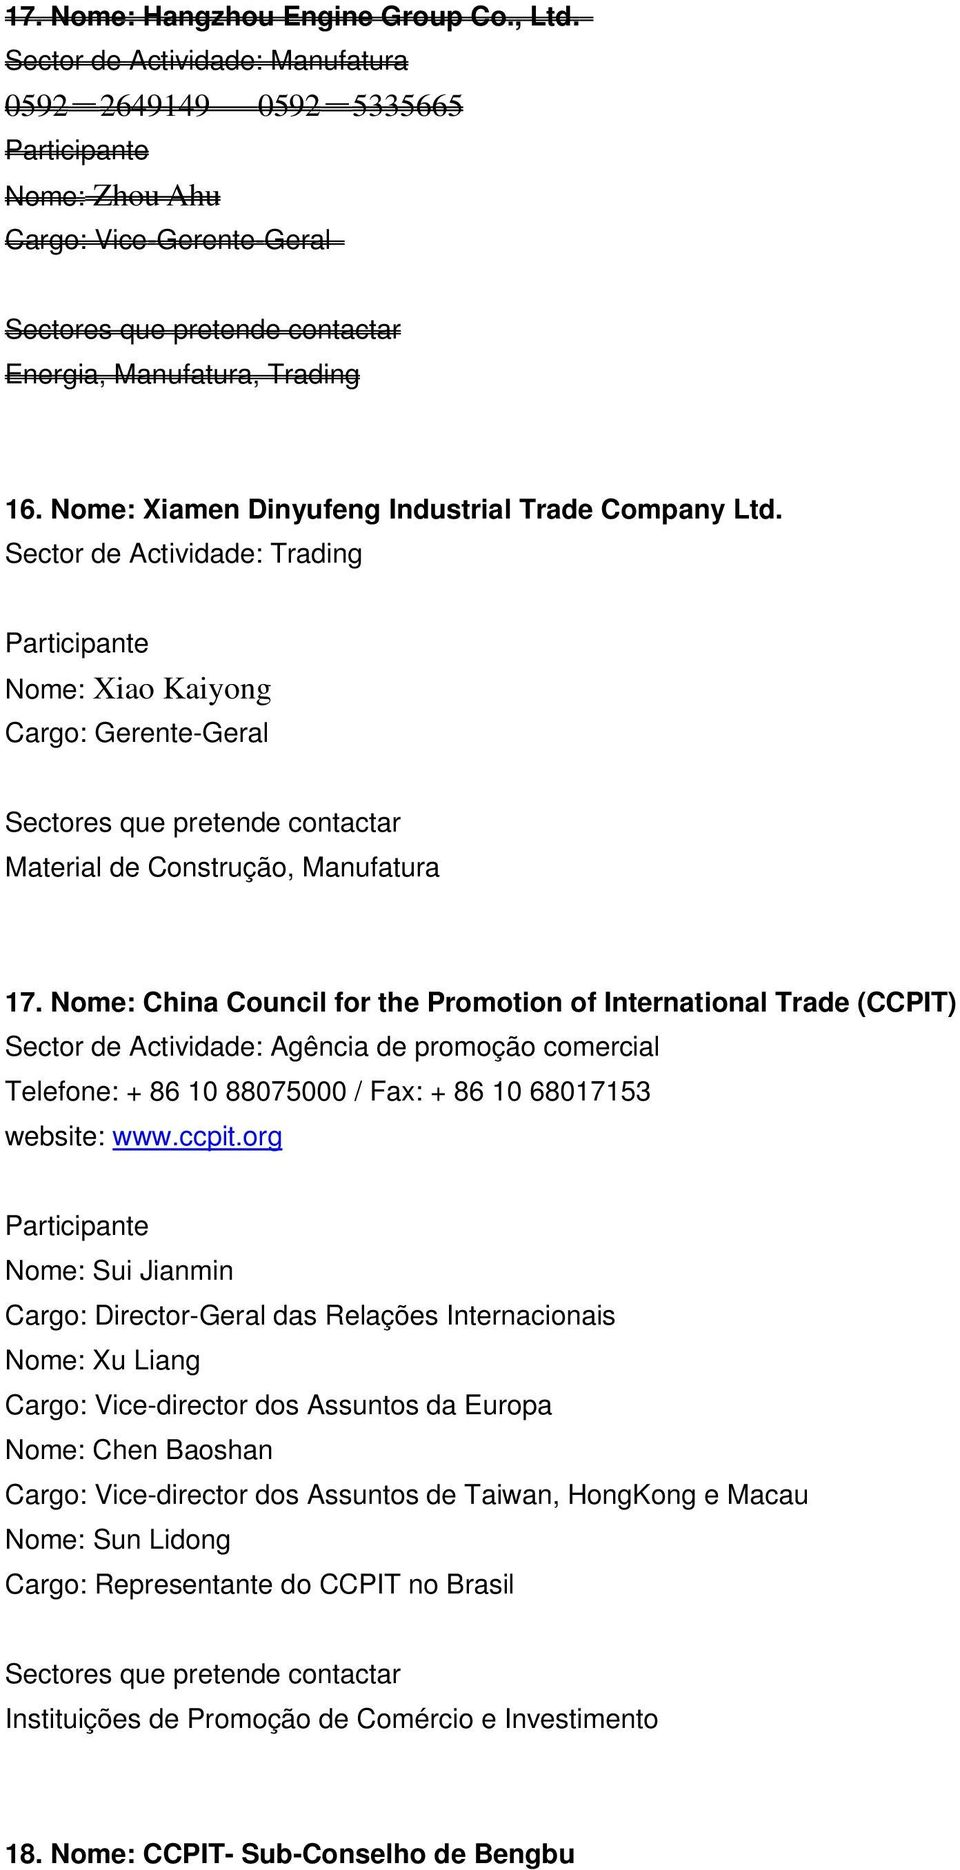 Nome: China Council for the Promotion of International Trade (CCPIT) Sector de Actividade: Agência de promoção comercial Telefone: + 86 10 88075000 / Fax: + 86 10 68017153 website: www.ccpit.